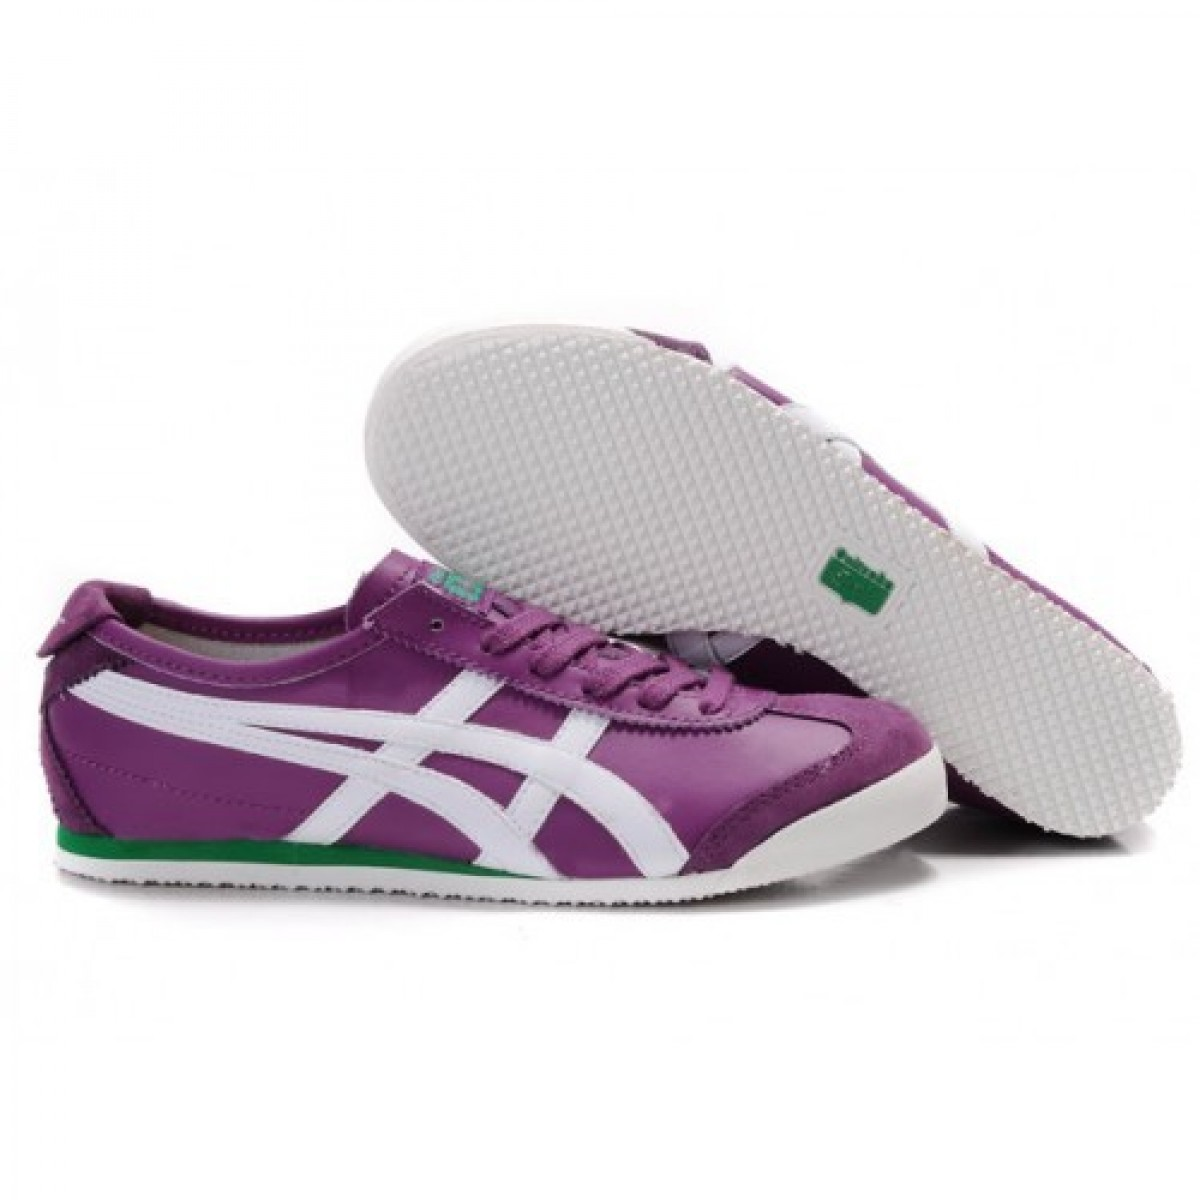 EN6751 Soldes Asics Onitsuka Tiger Mexico 66 Chaussures Violet Blanc 20373255 Pas Cher